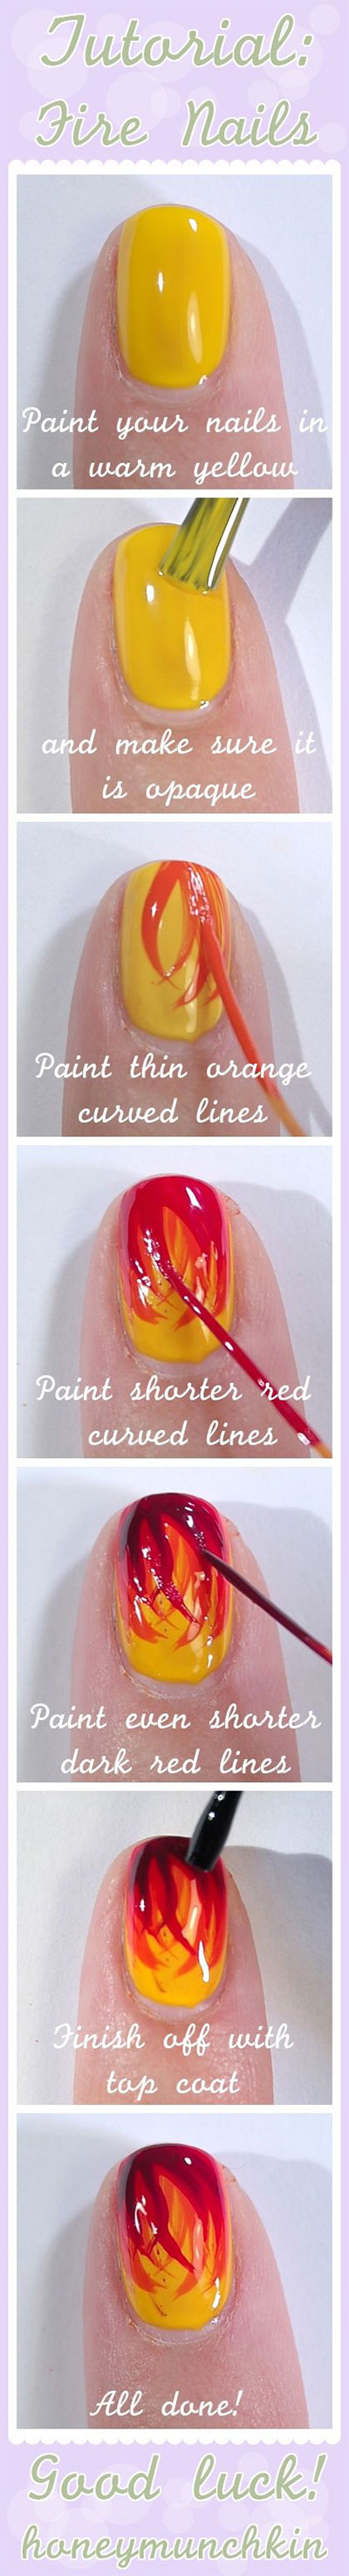 Step-By-Step-Nail-Art-Tutorials-For-Beginners-Learners-2013-2014-10